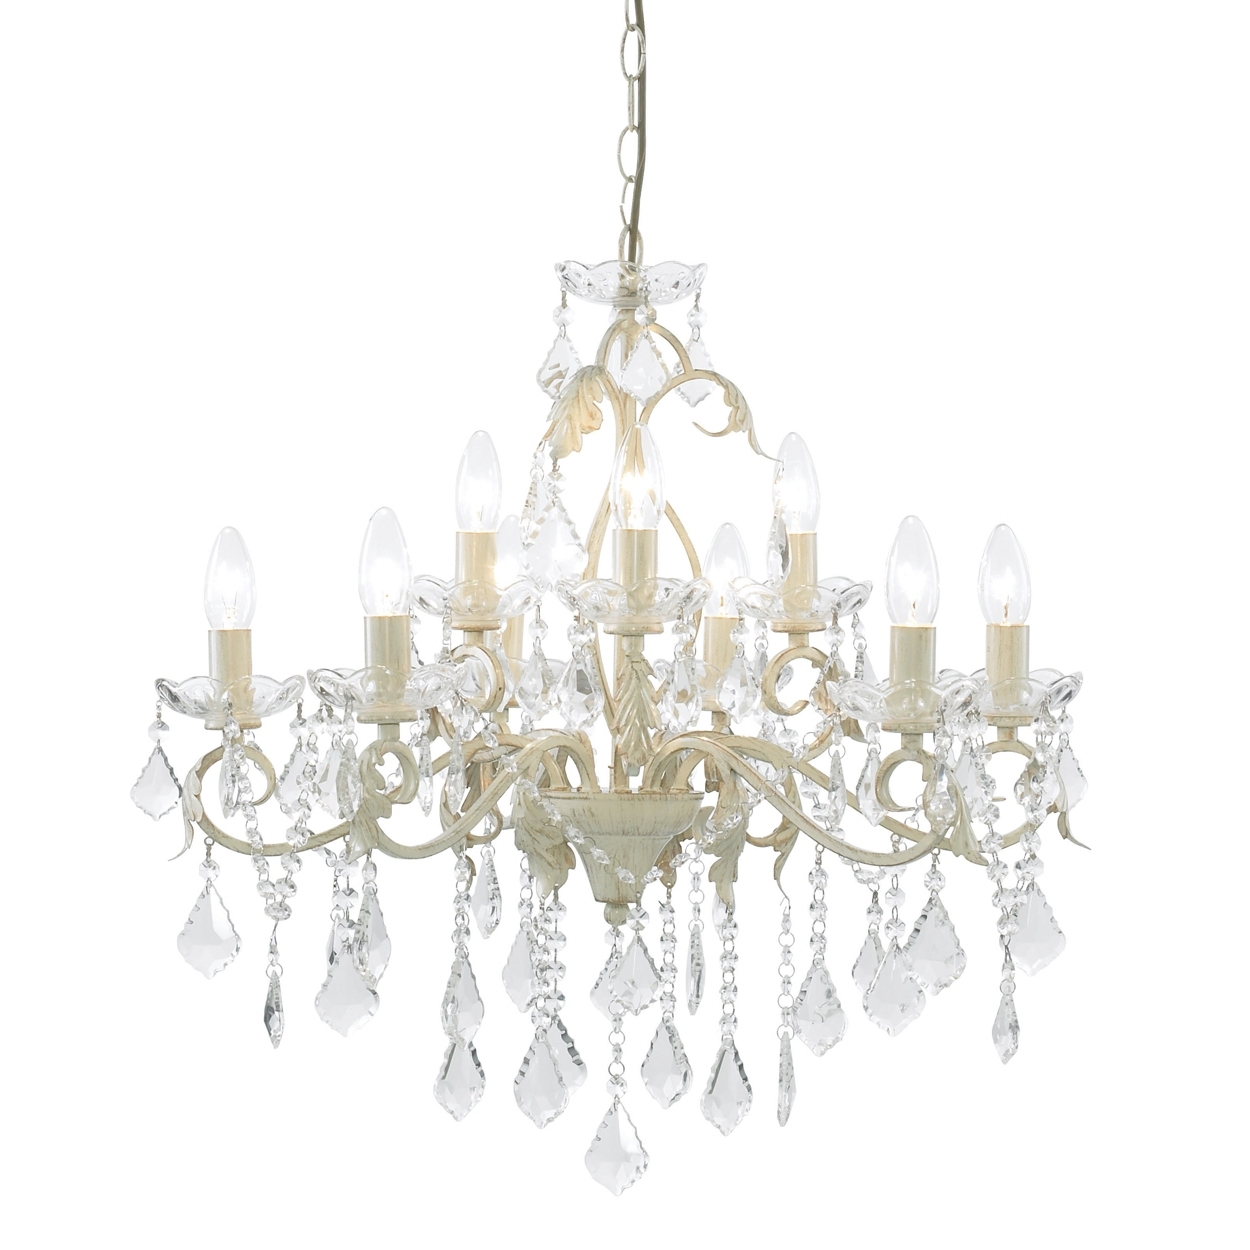 Most Current Chandeliers Design : Magnificent Cream And Gold Crystal Chandelier Intended For Large Cream Chandelier (View 9 of 15)